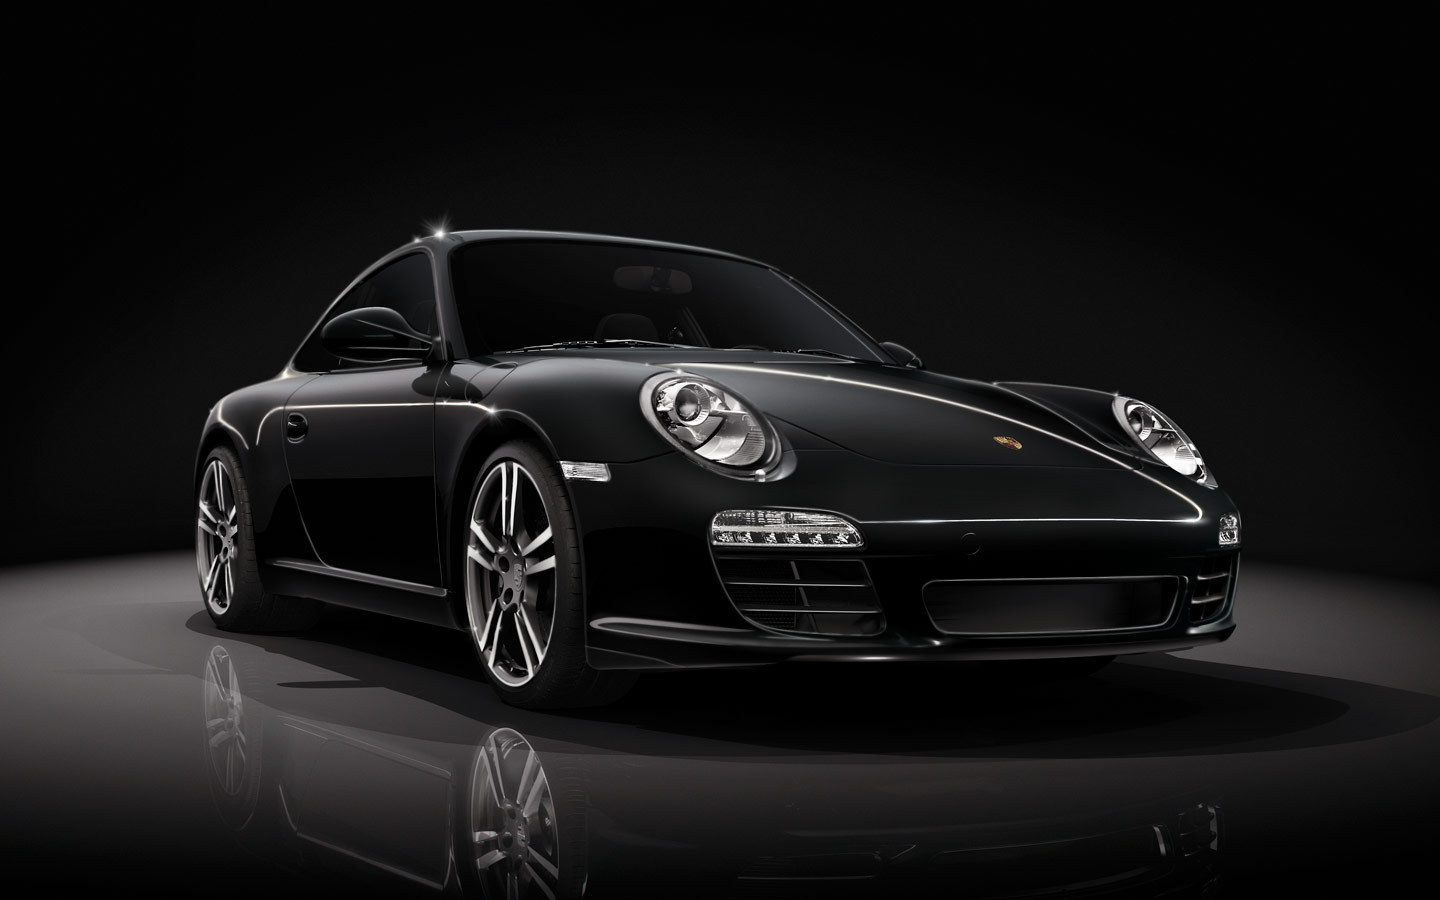 2011_porsche_911-black_edition_be171.jpg